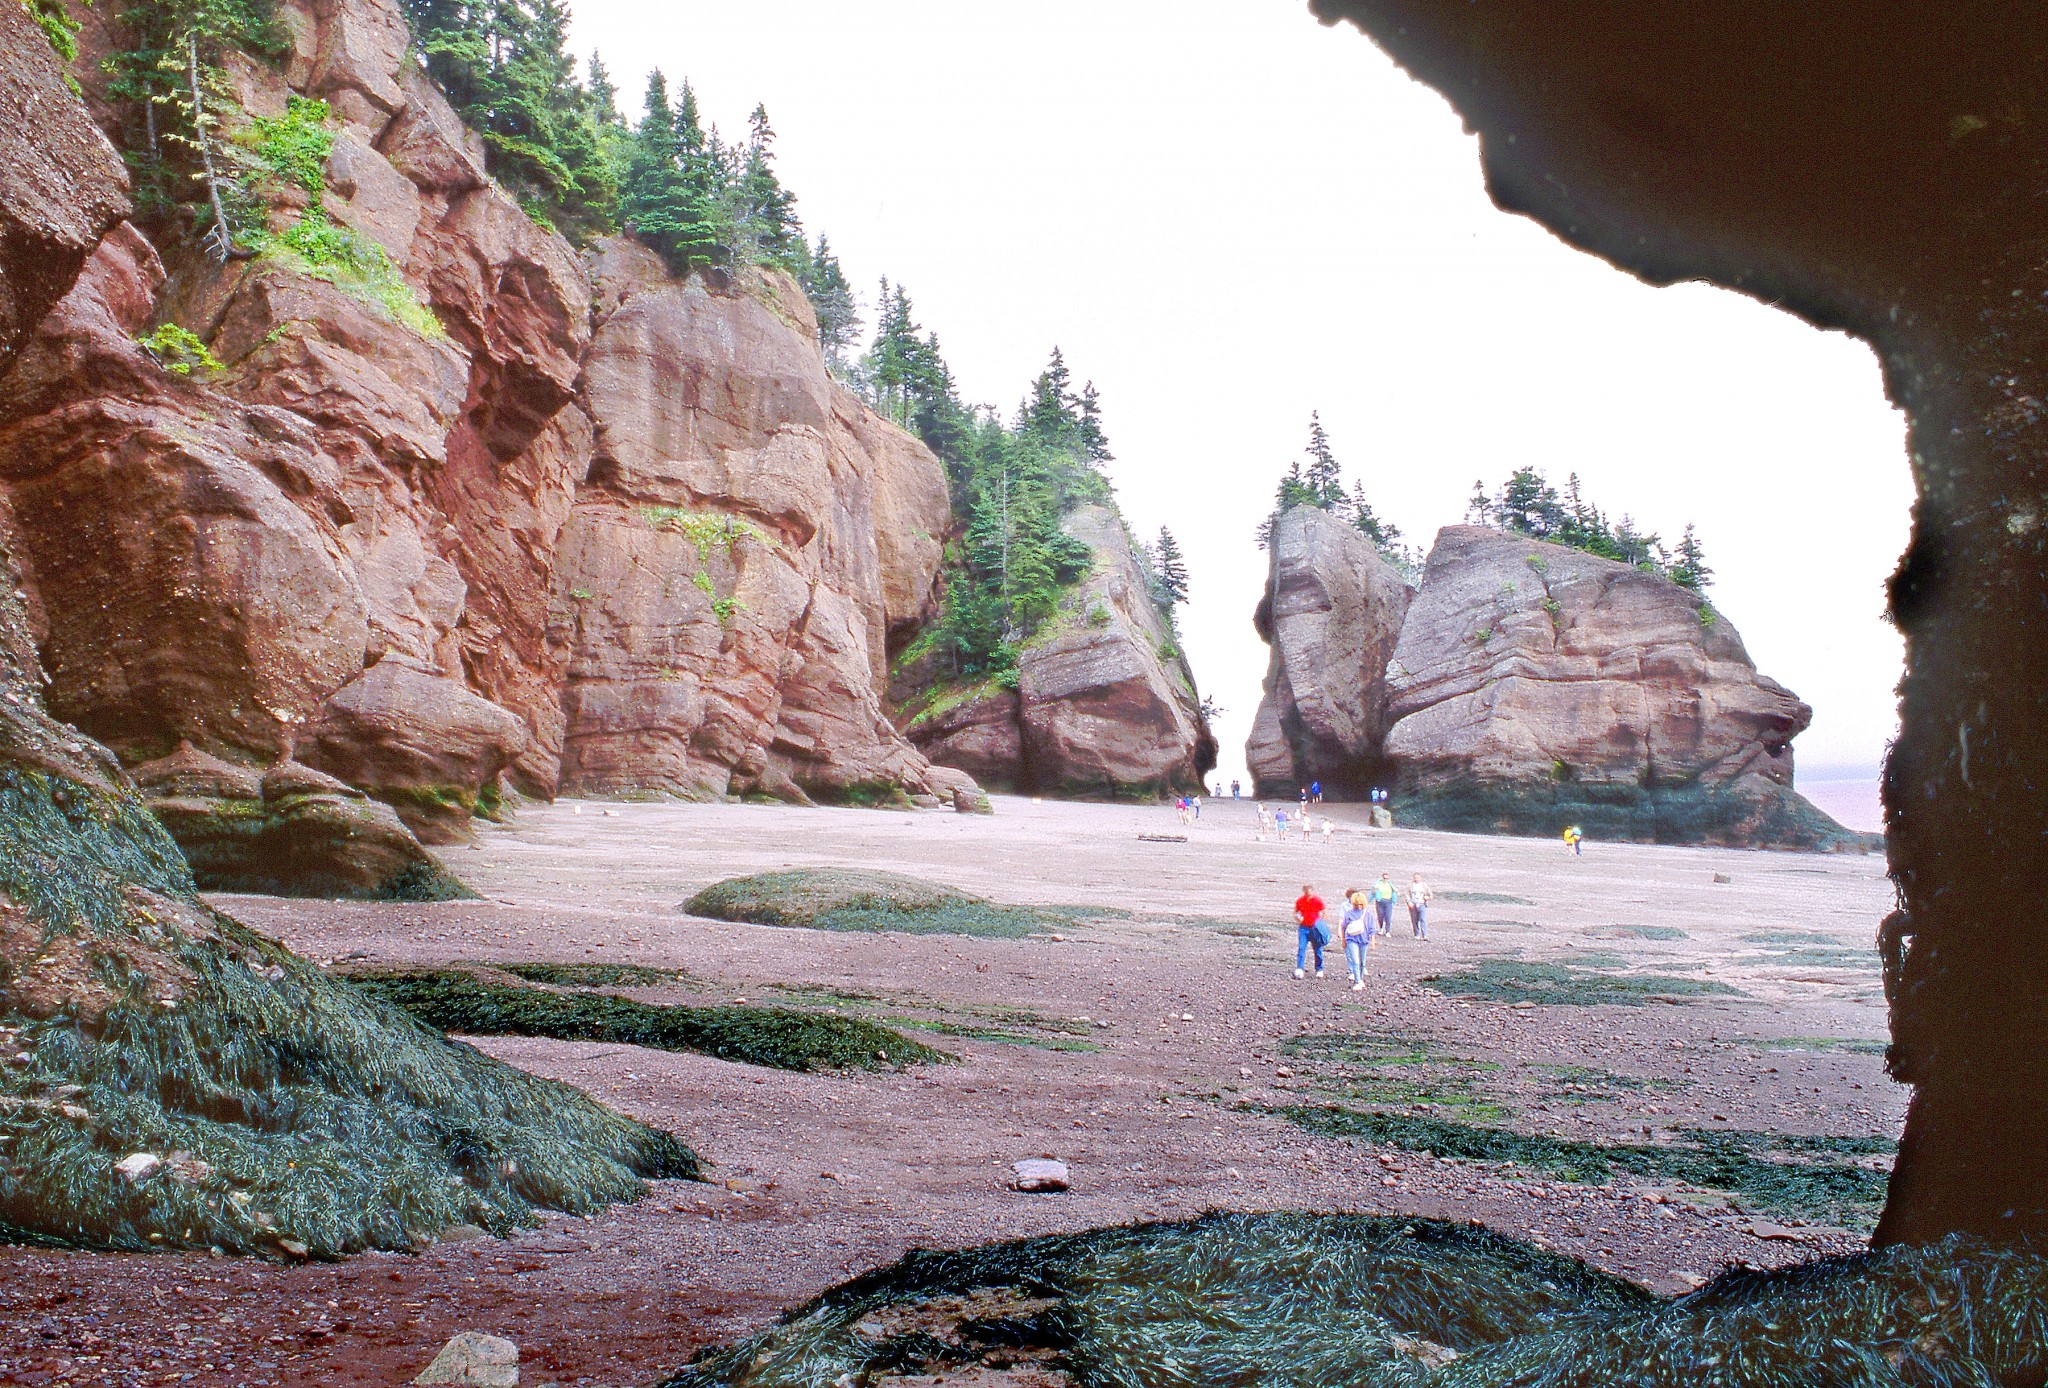 The flowerpots of Hopewell Cape in New Brunswick on the Bay of Fundy are unique. This scene was captured at low tide but six hours later it was high tide and this beach was under fifty feet of water. Rocks in the foreground are covered with a seaweed called bladderwrack. (Photo by Art Weber)